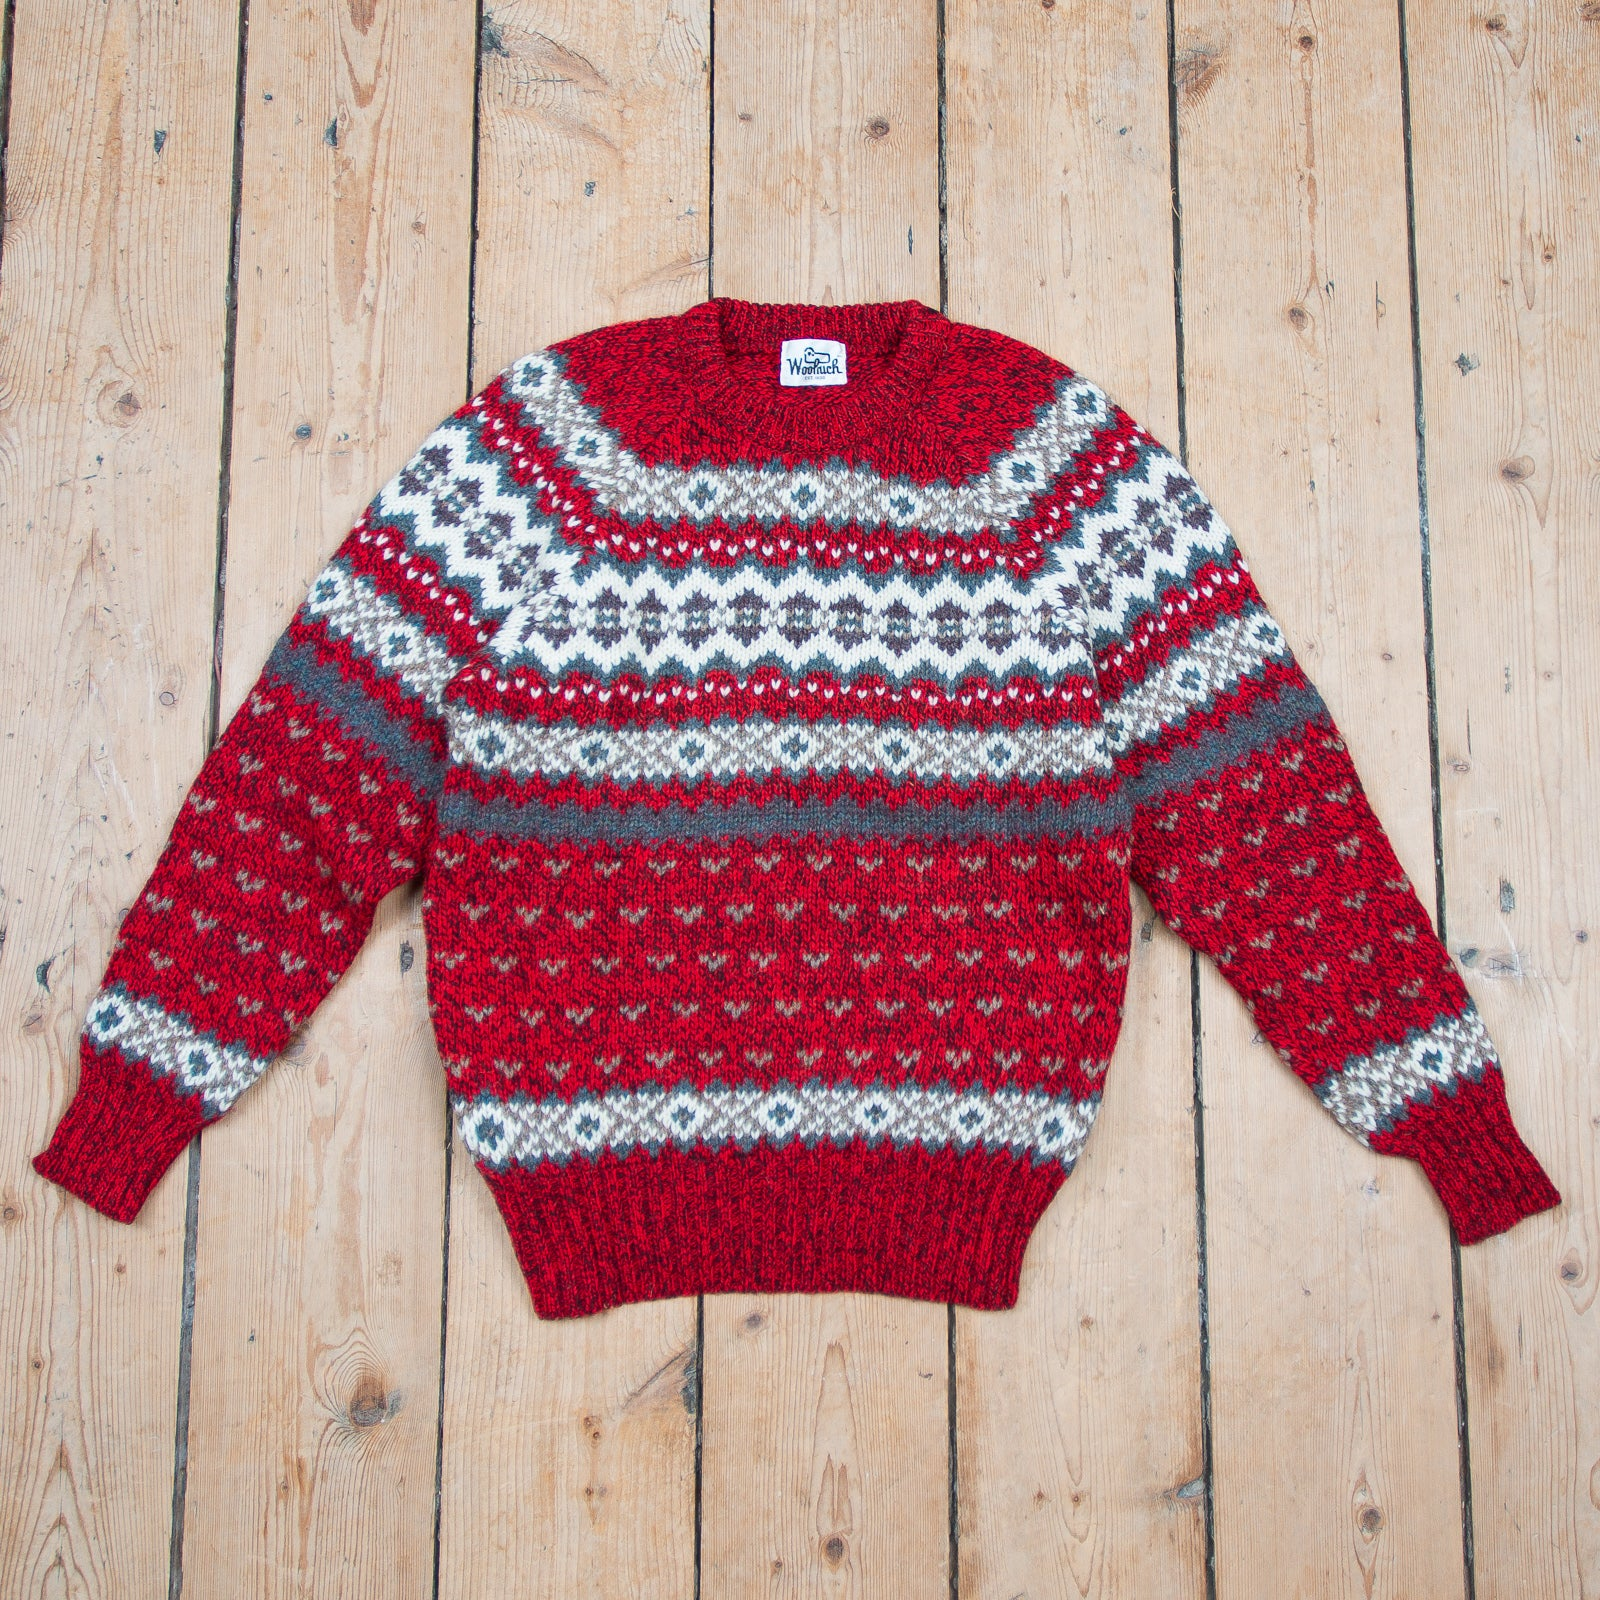 Woolrich Knitted Wool Sweater